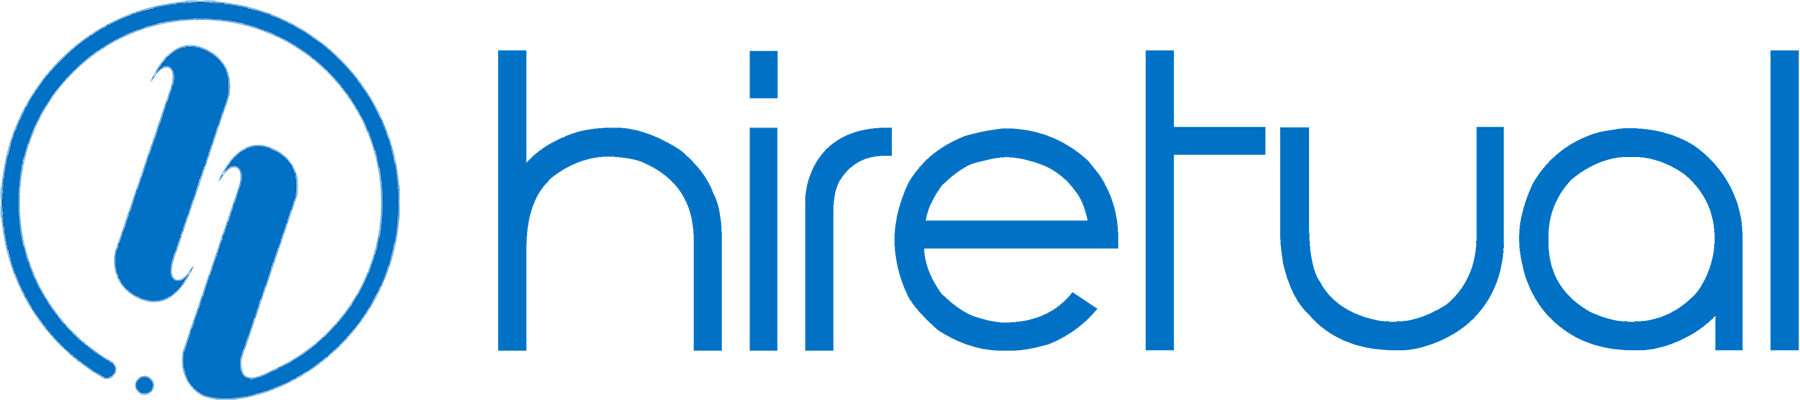 And also by the team at Hiretual.